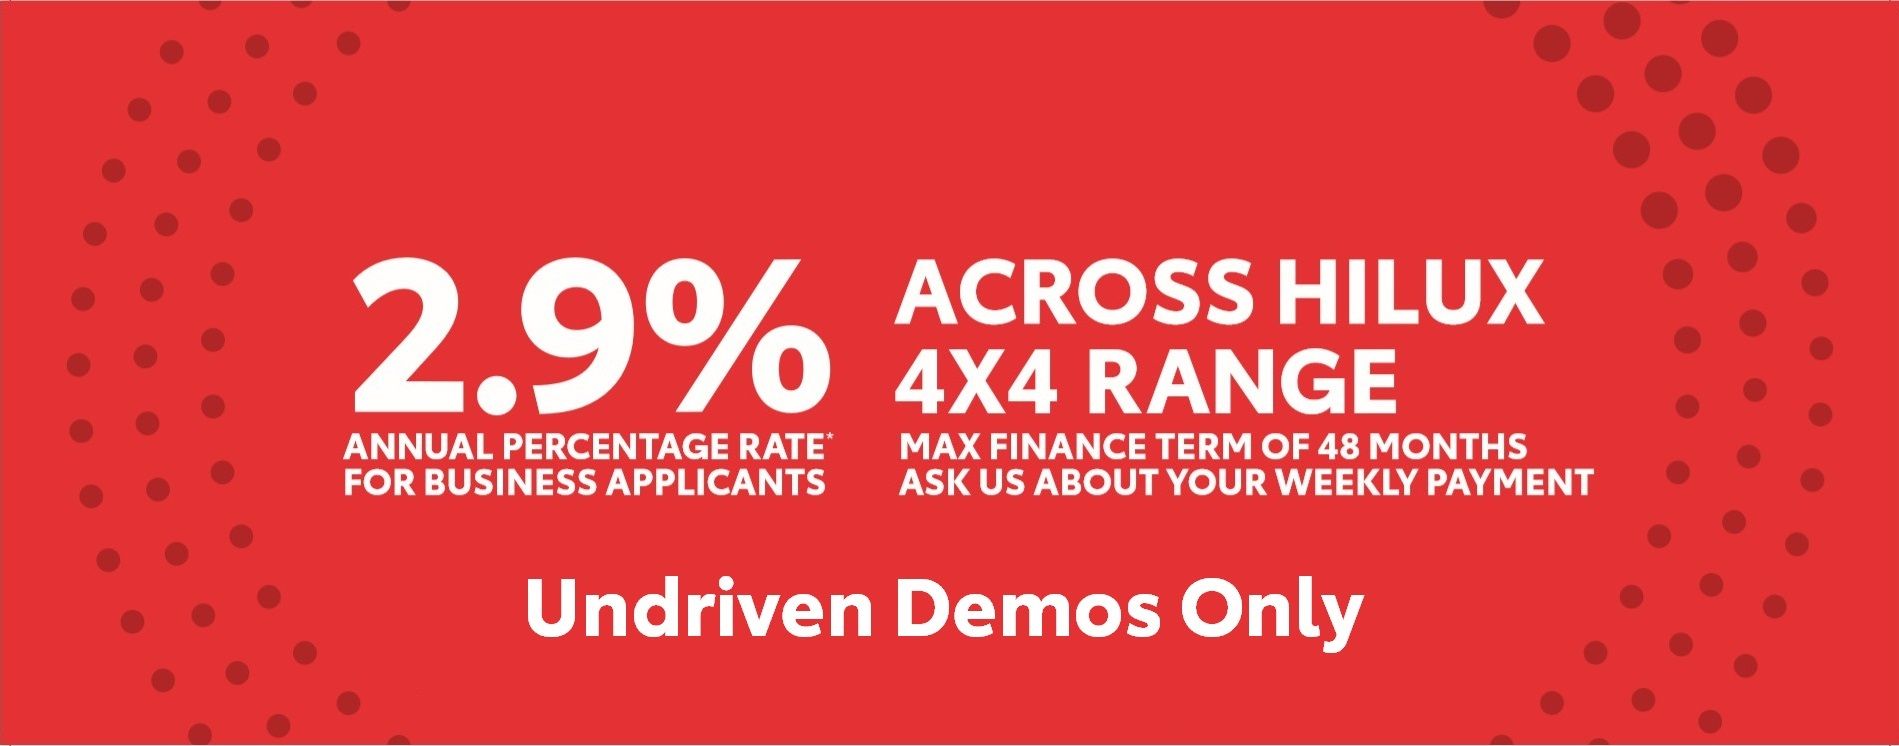 HiLux Undriven Demos 2.9% Contract Rate